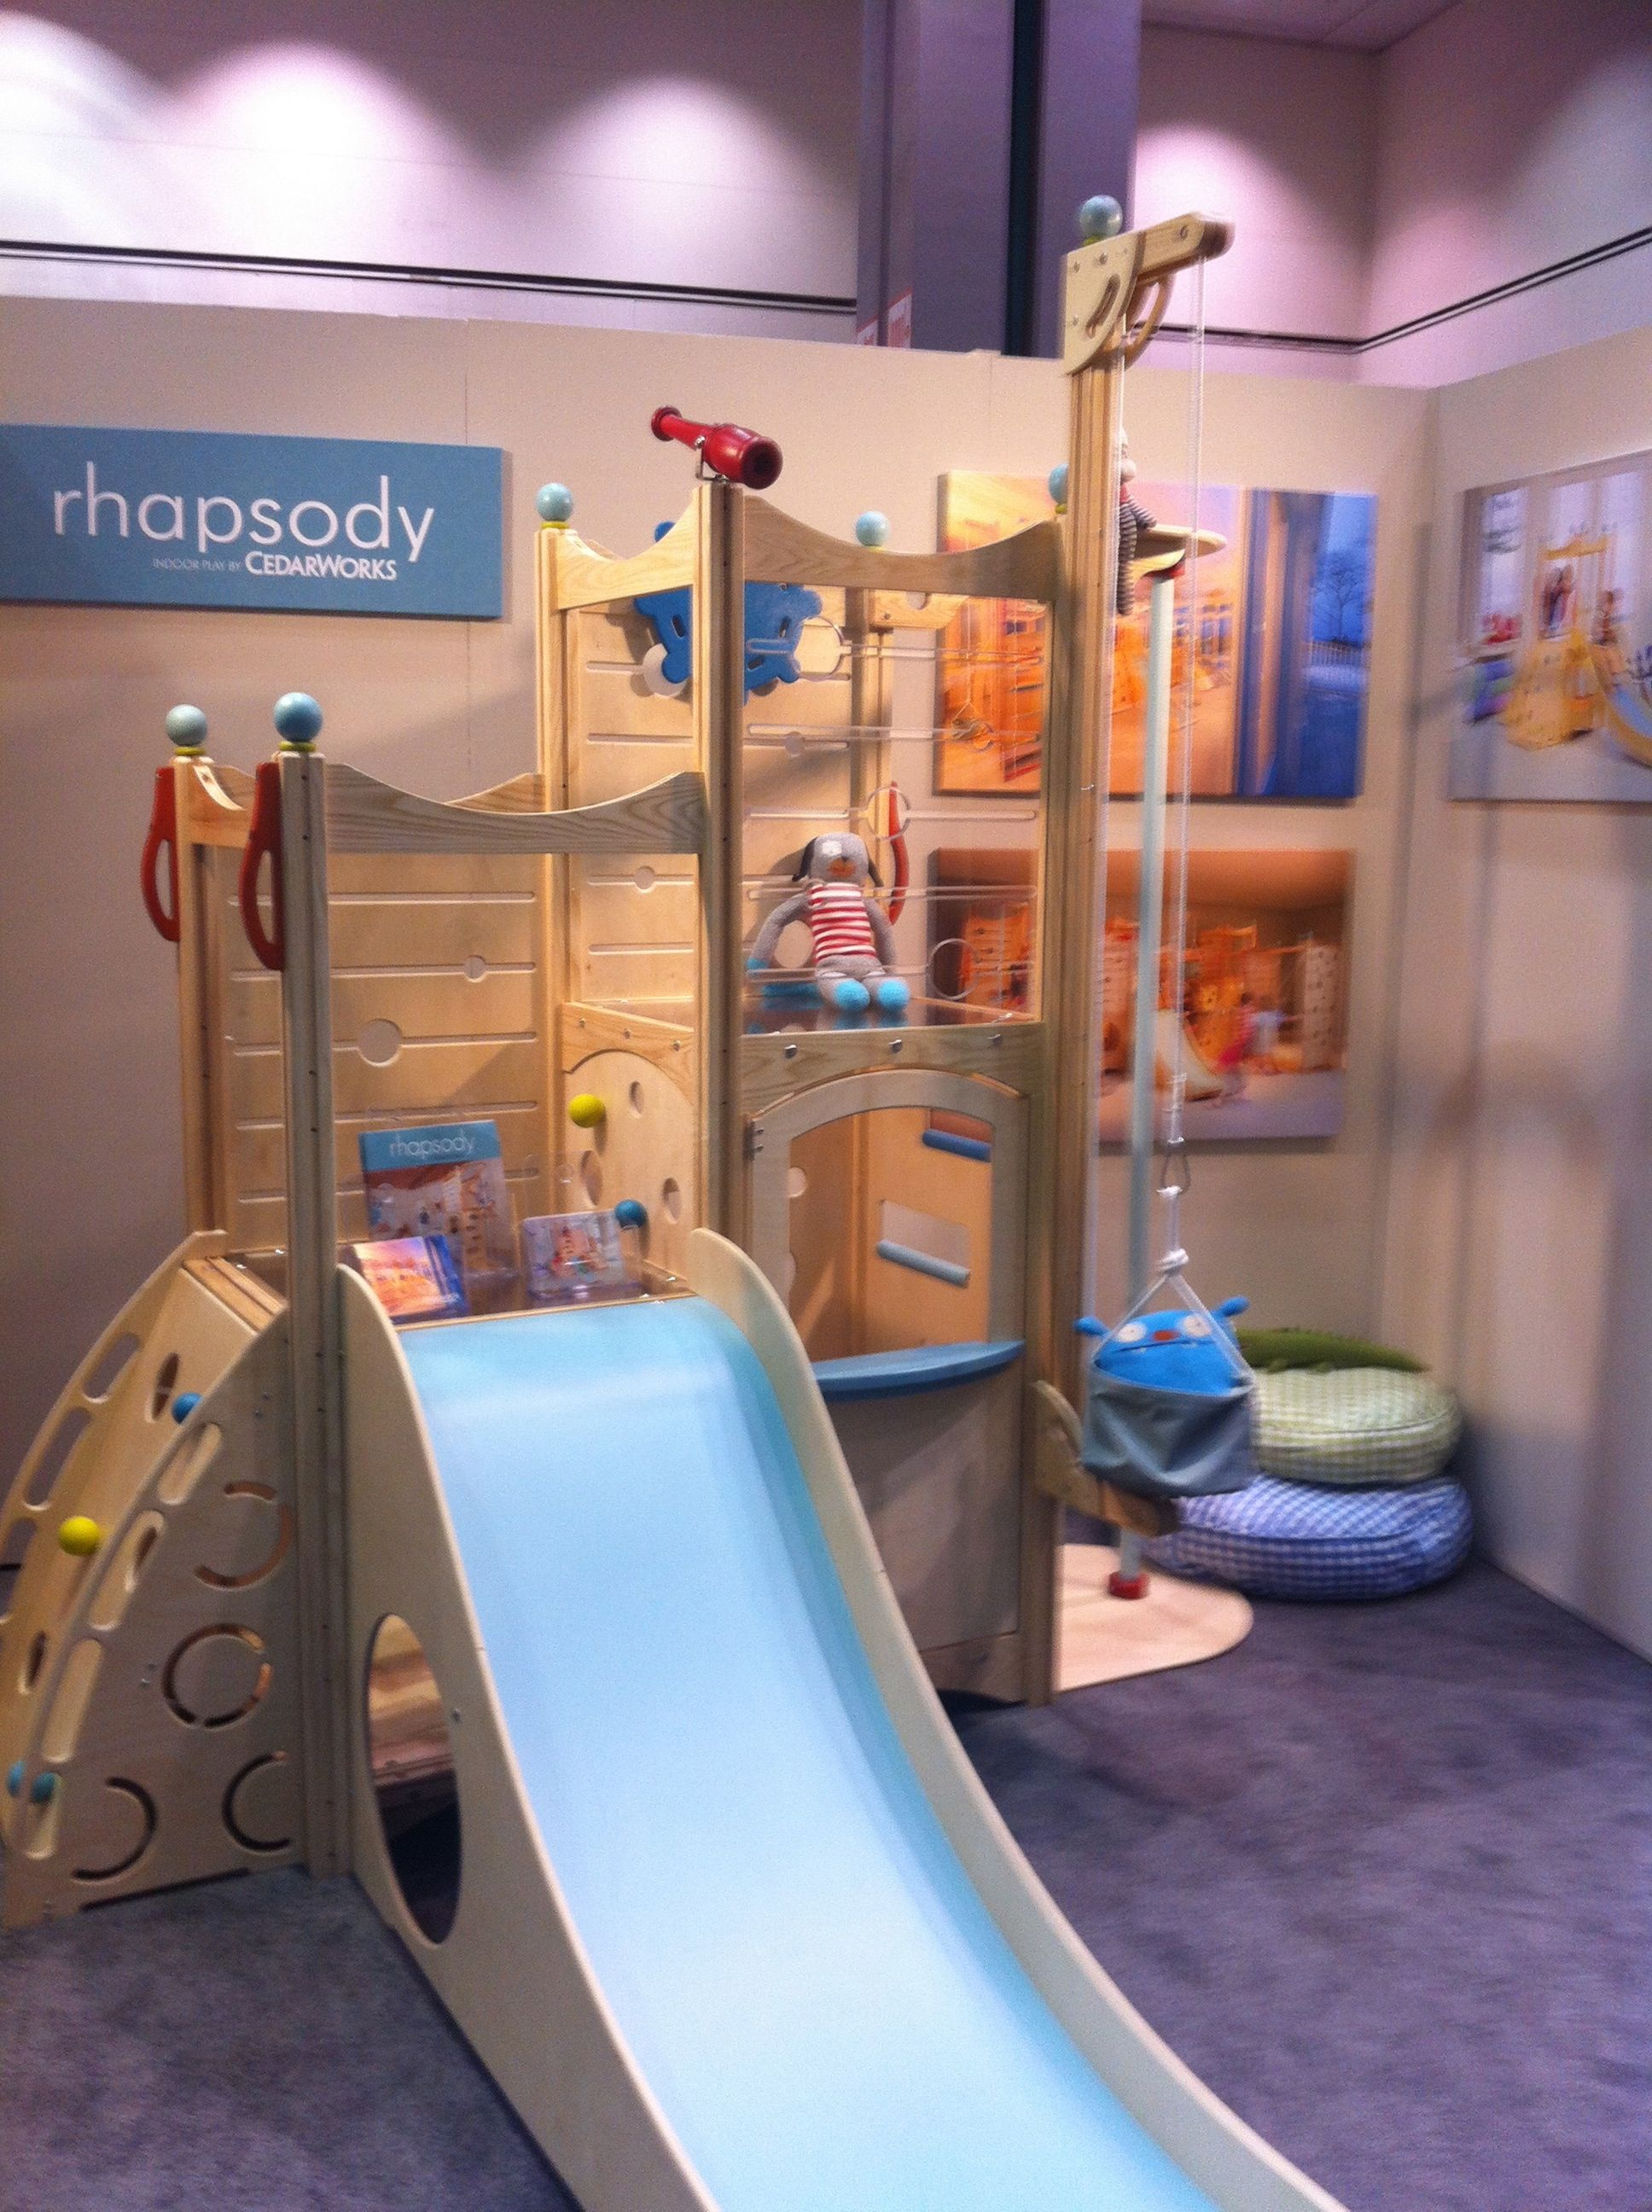 Rhapsody Indoor Playset by Cedarworks | Ideas for my future family ...